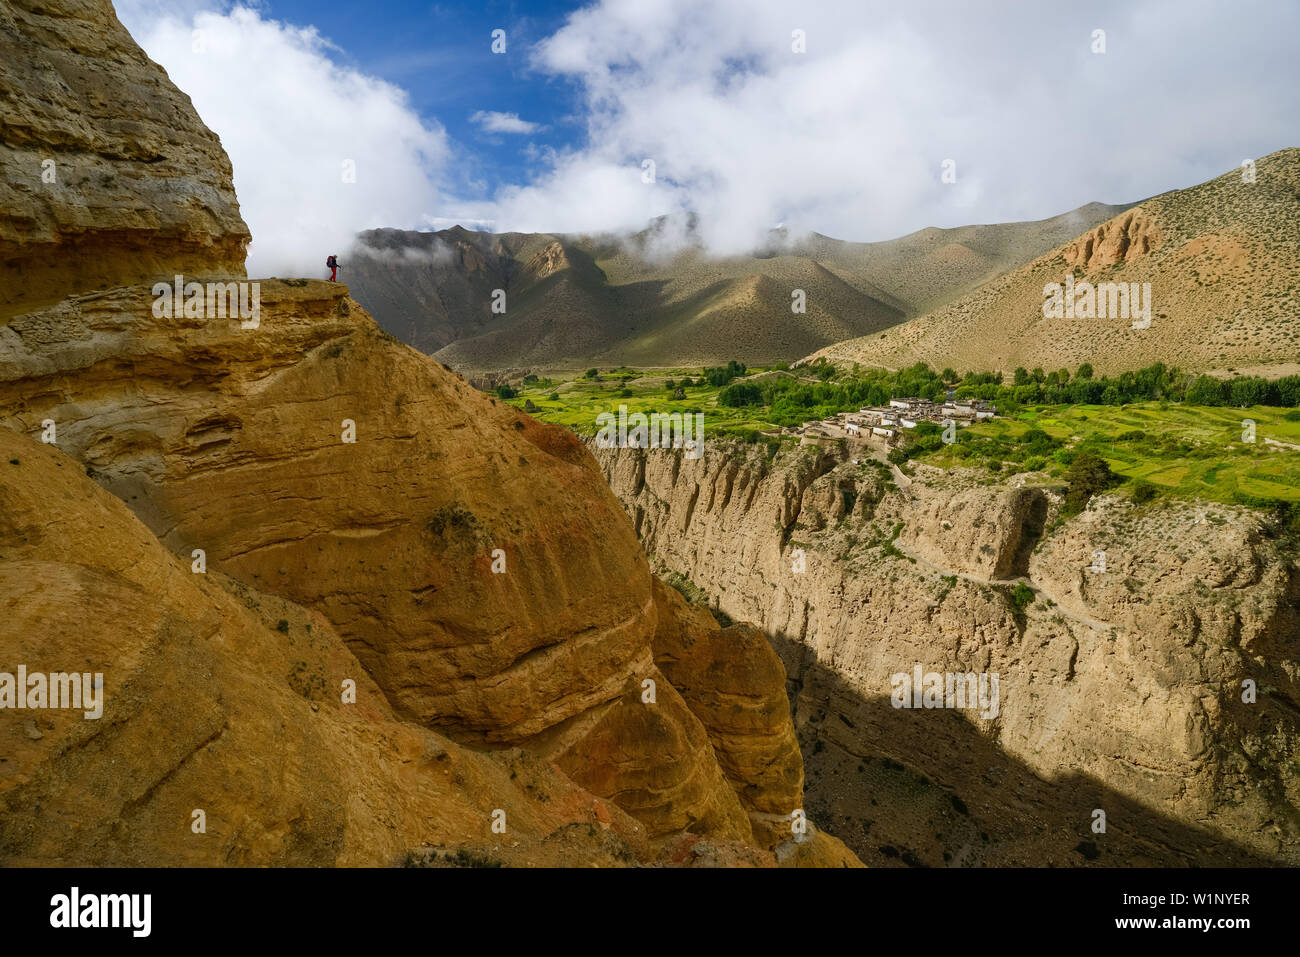 Young woman, hiker, trekker in the surreal landscape typical for Mustang in the high desert around the Kali Gandaki valley, the deepest valley in the Stock Photo